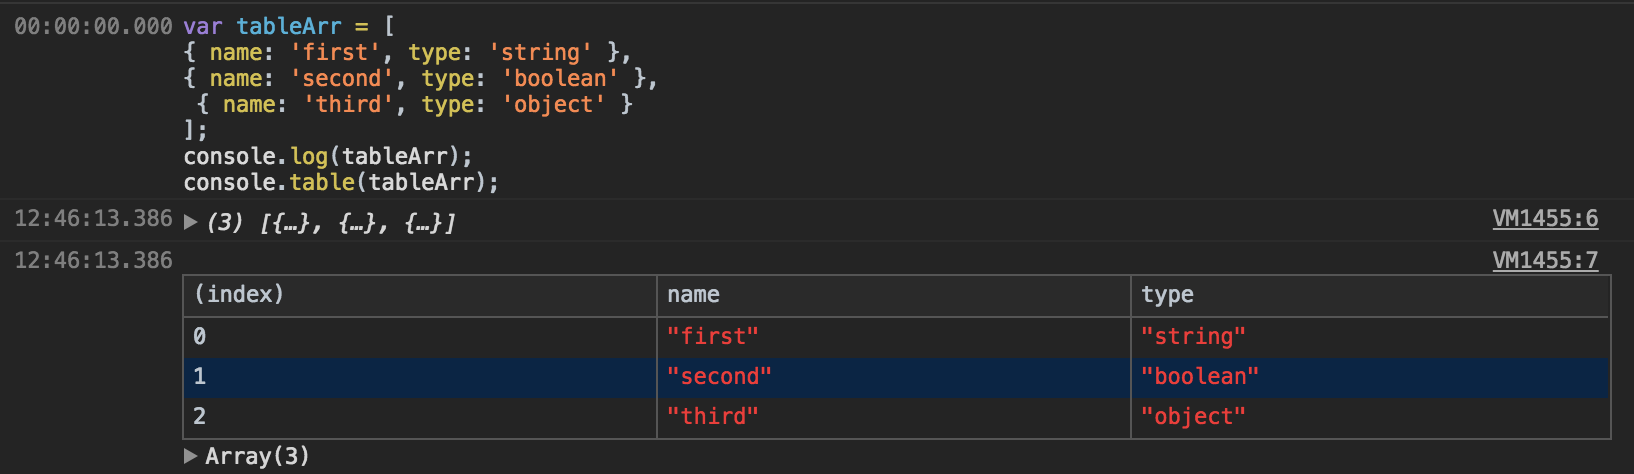 console.table array example